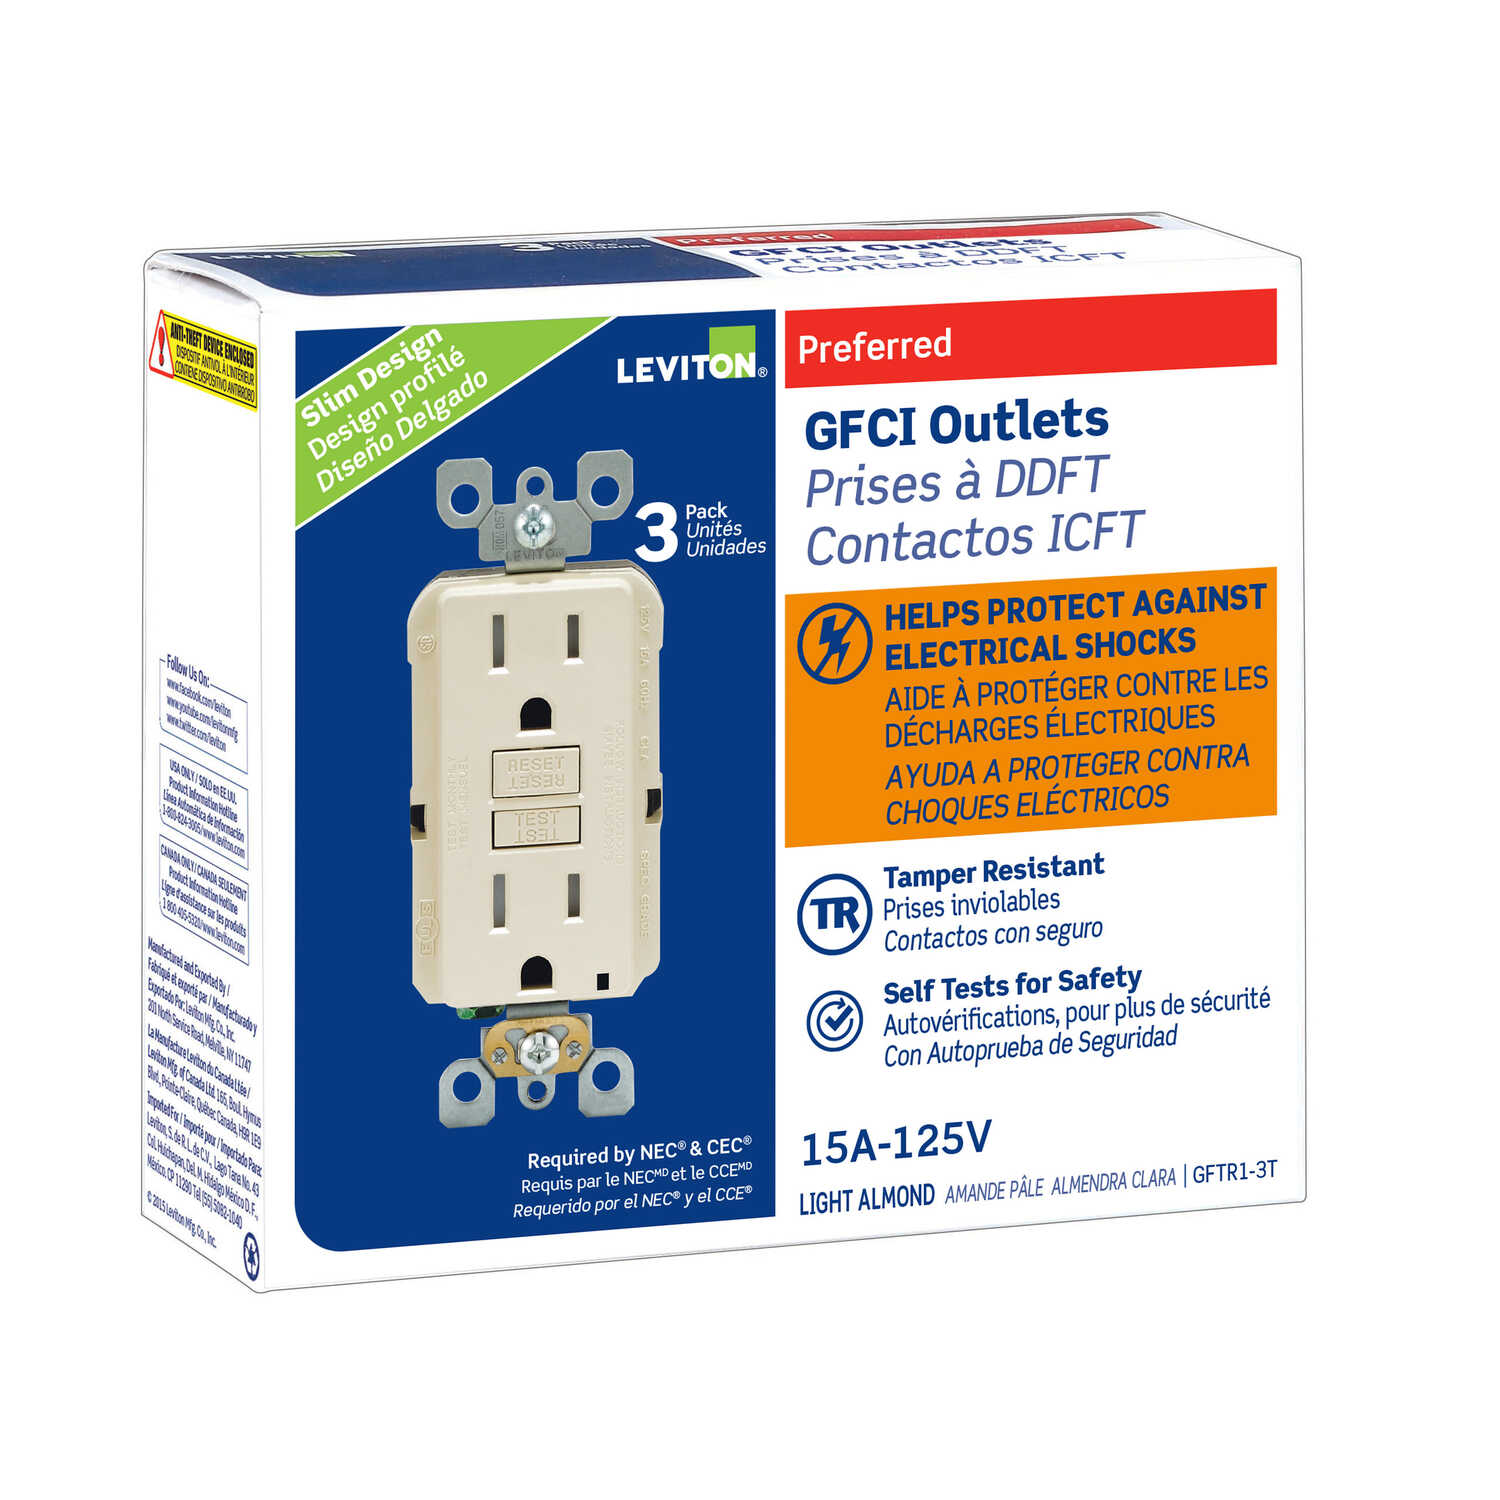 Leviton  15 amps 125 volt Light Almond  GFCI Outlet  5-15R  3 pk